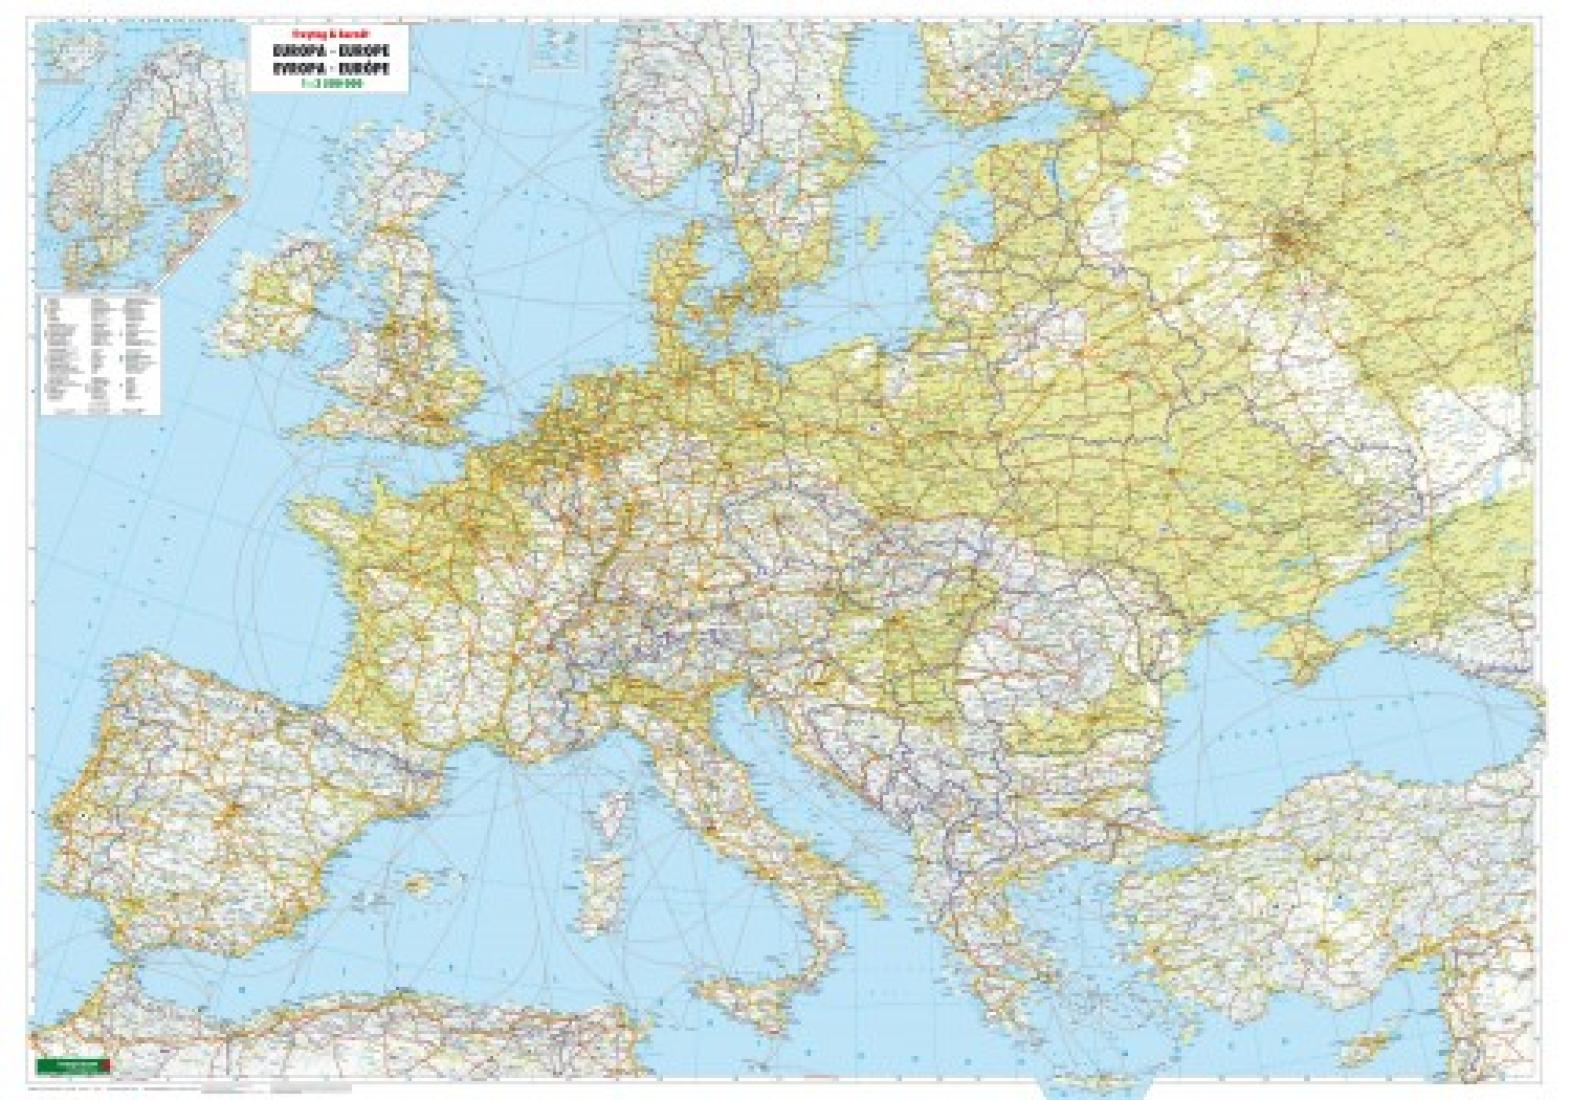 Europe Physical Wall Map By Freytag Berndt Und Artaria